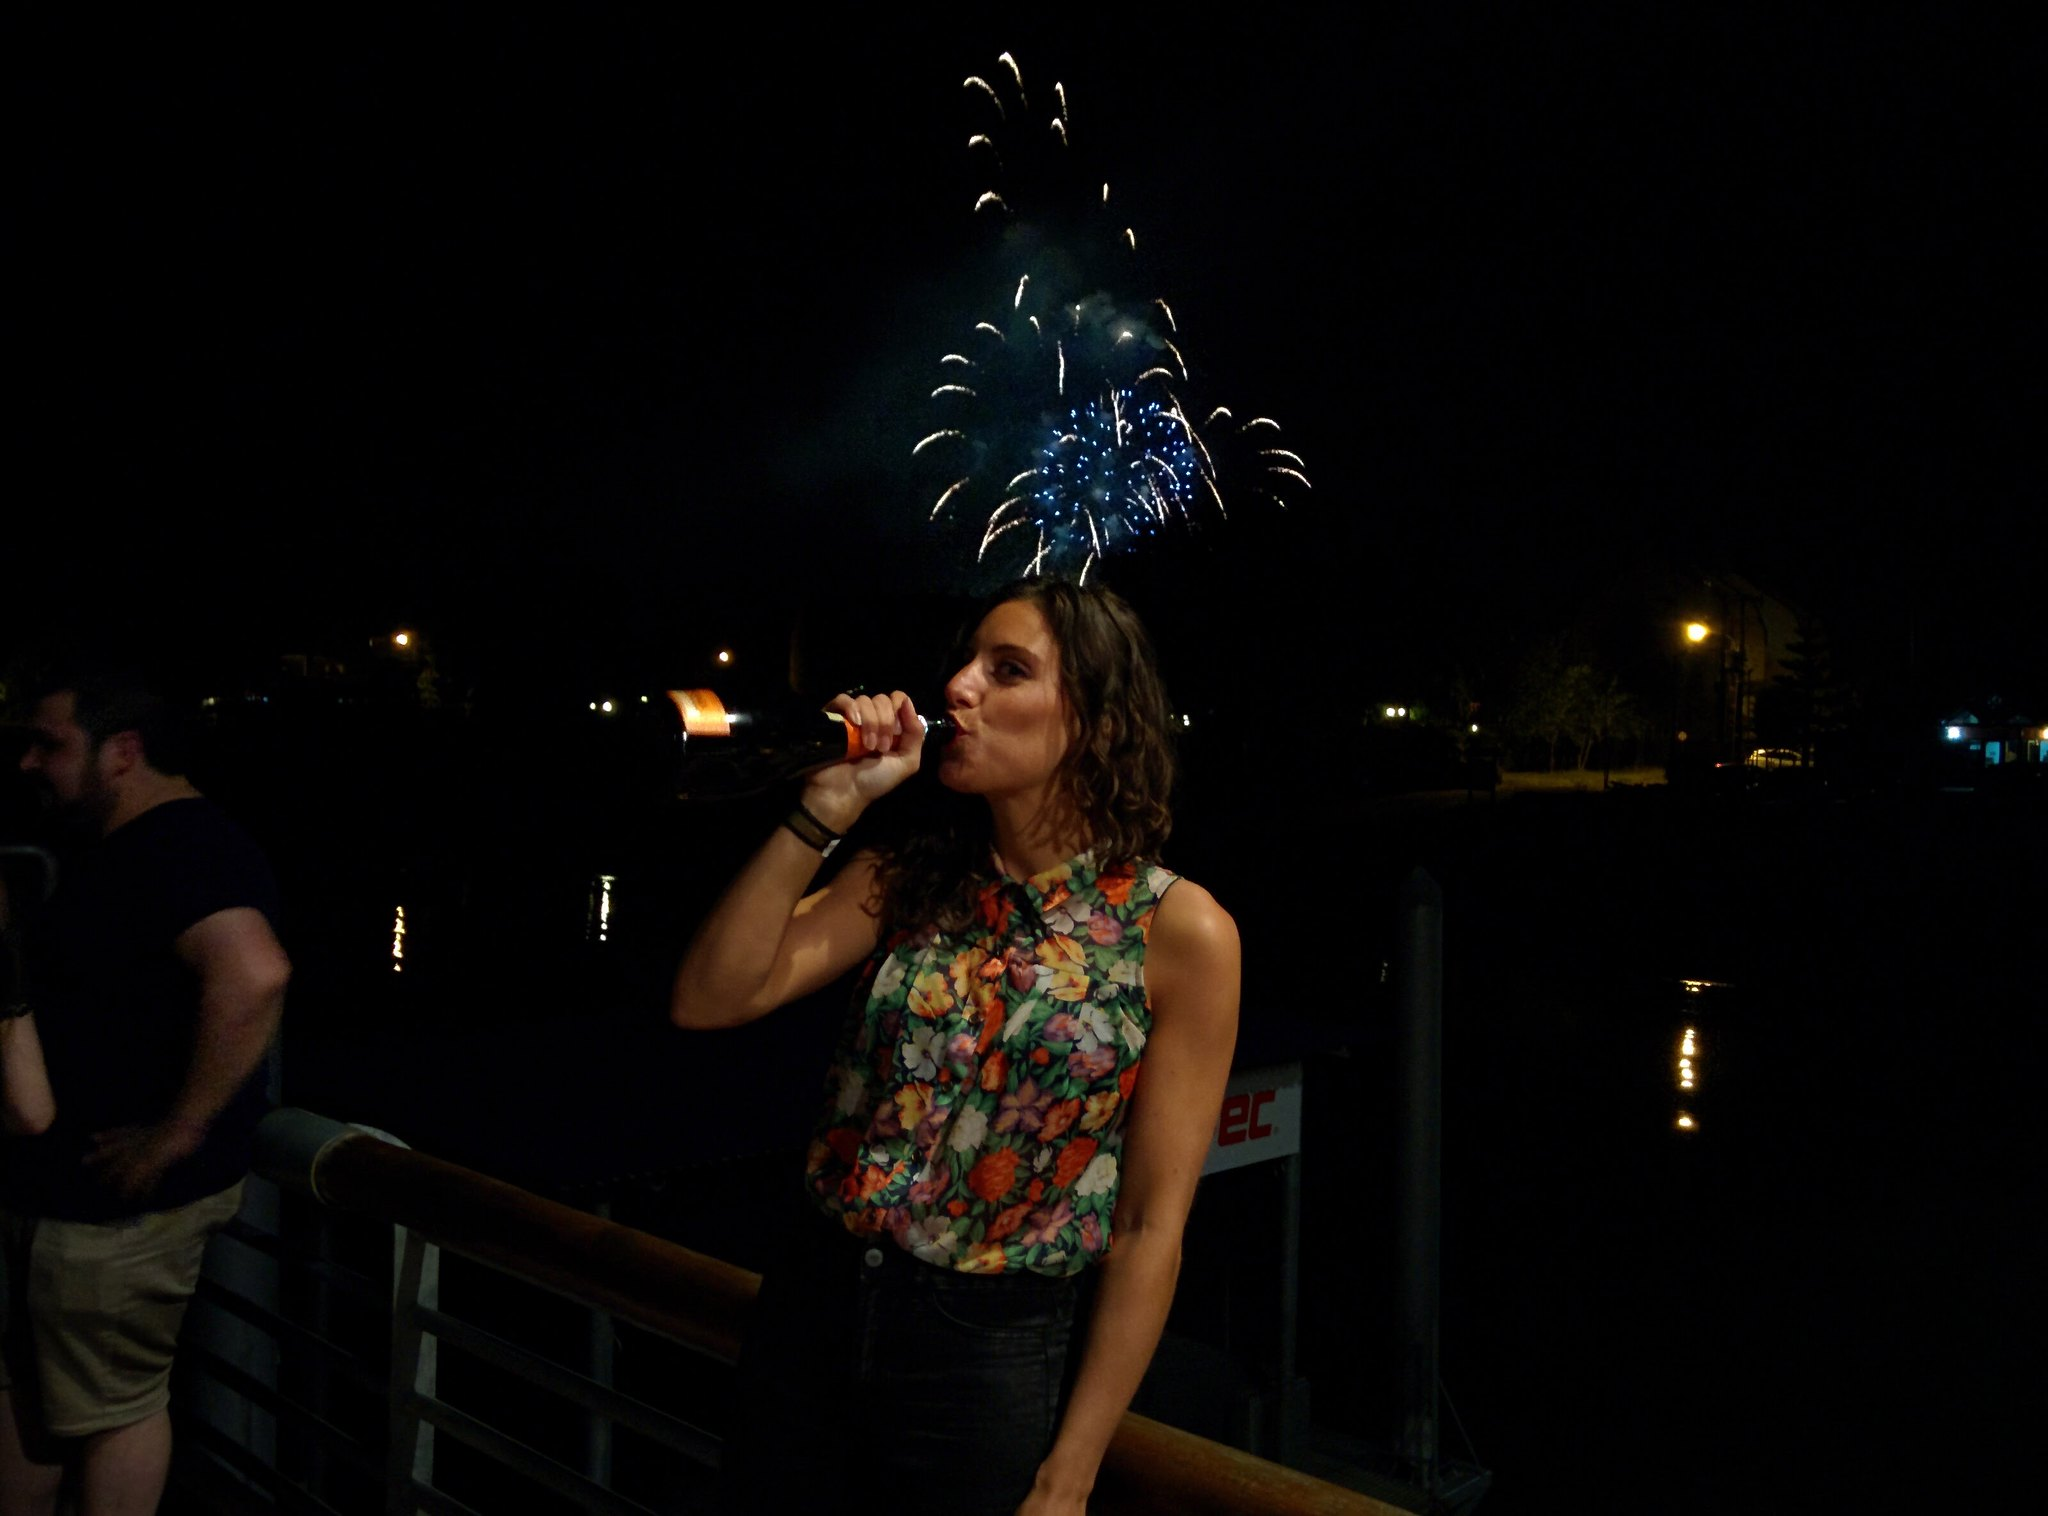 Silvana drinks in the new year